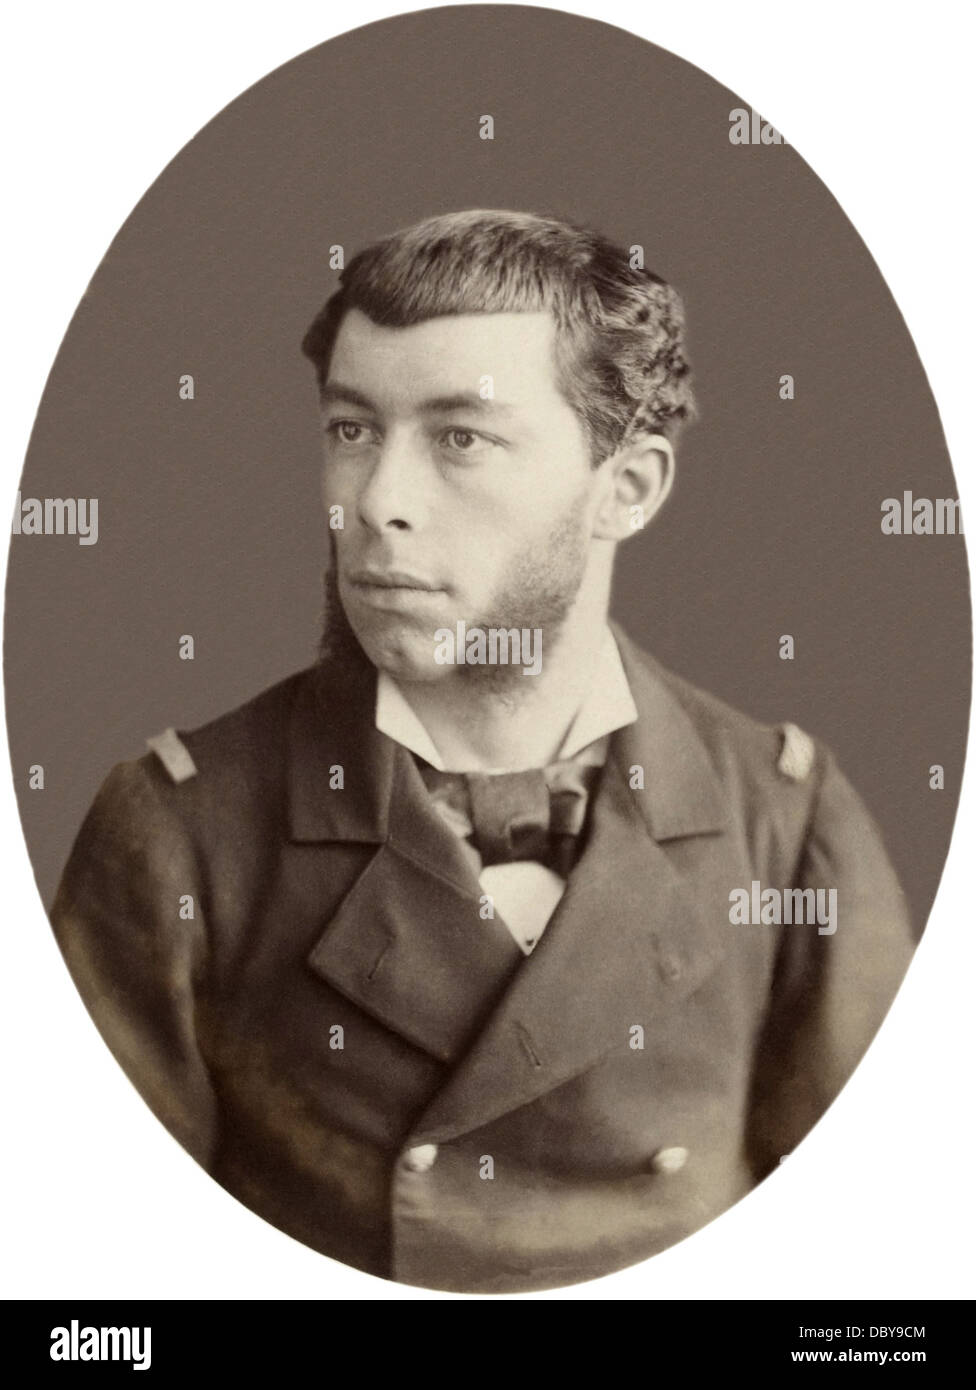 Antoine Mizon, (1853 - 1899), french navy officer, and colonial explorer. - Stock Image